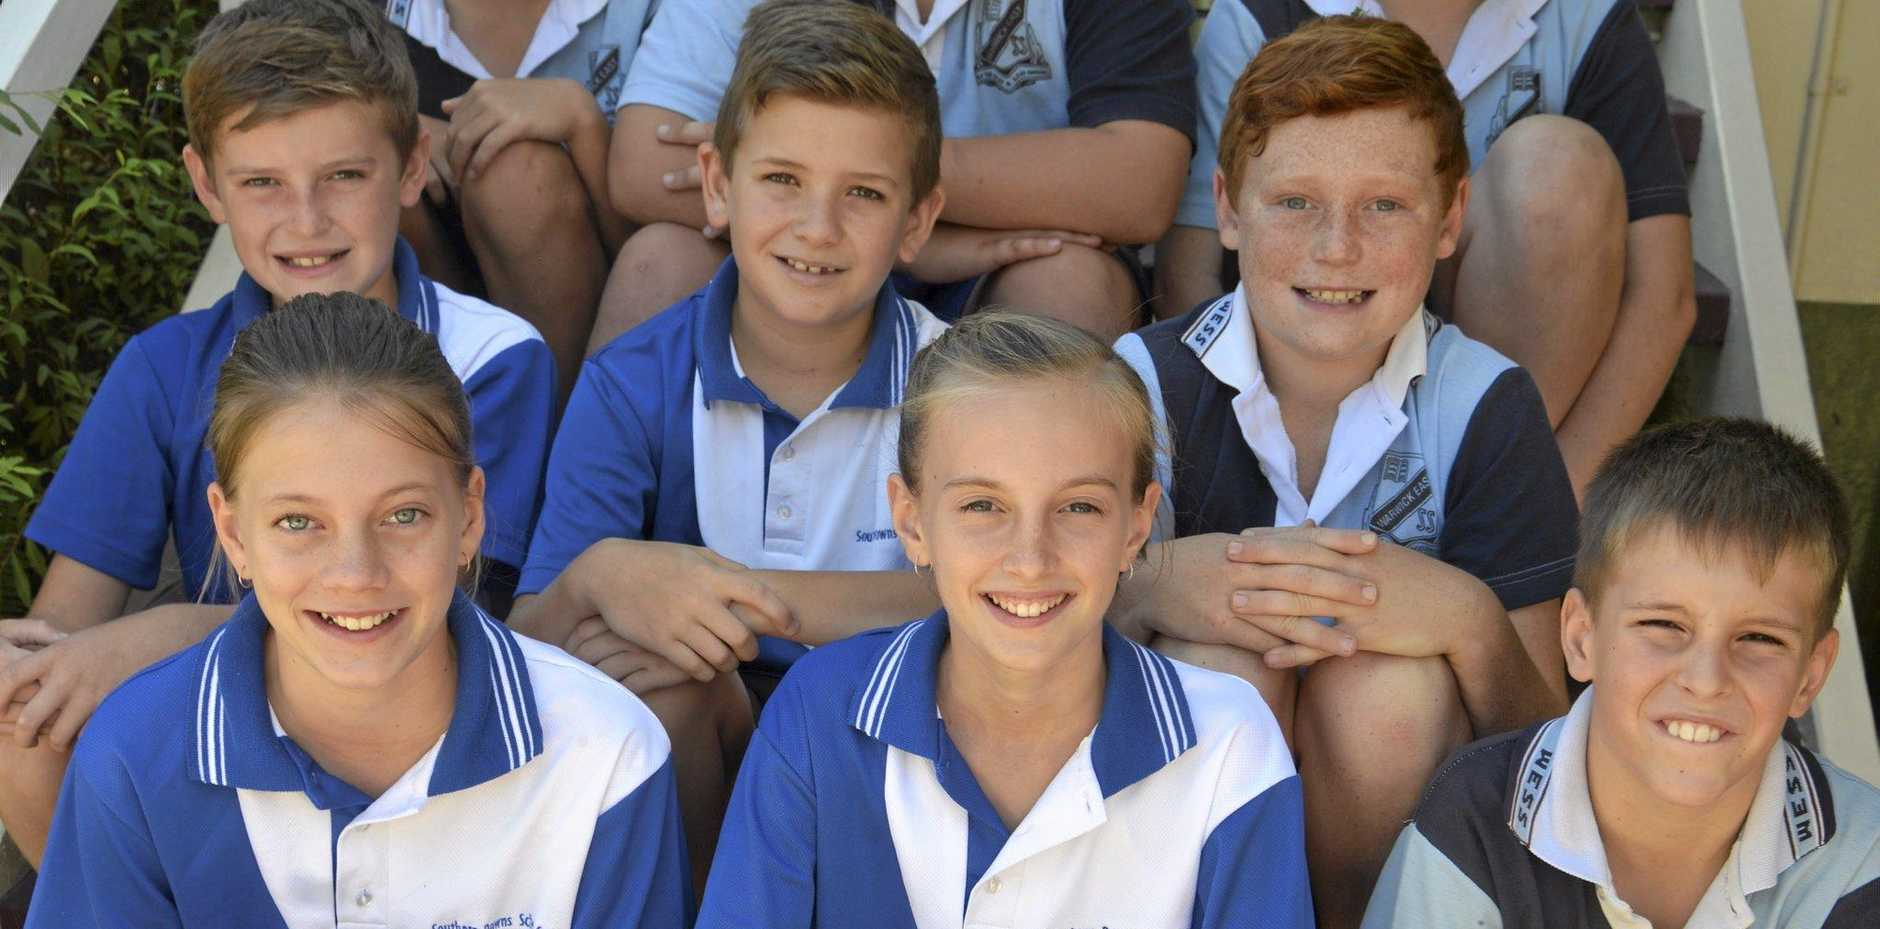 WELL DONE: Warwick East State School district and regional stars (front, from left) Madi Balloch, Shardae Wright, Ryan Clark, (middle) William Ready, Noah Dwan, Kaleb Driscoll, (back) Koby Bormolini, Todd Newport and Codie Johnson.